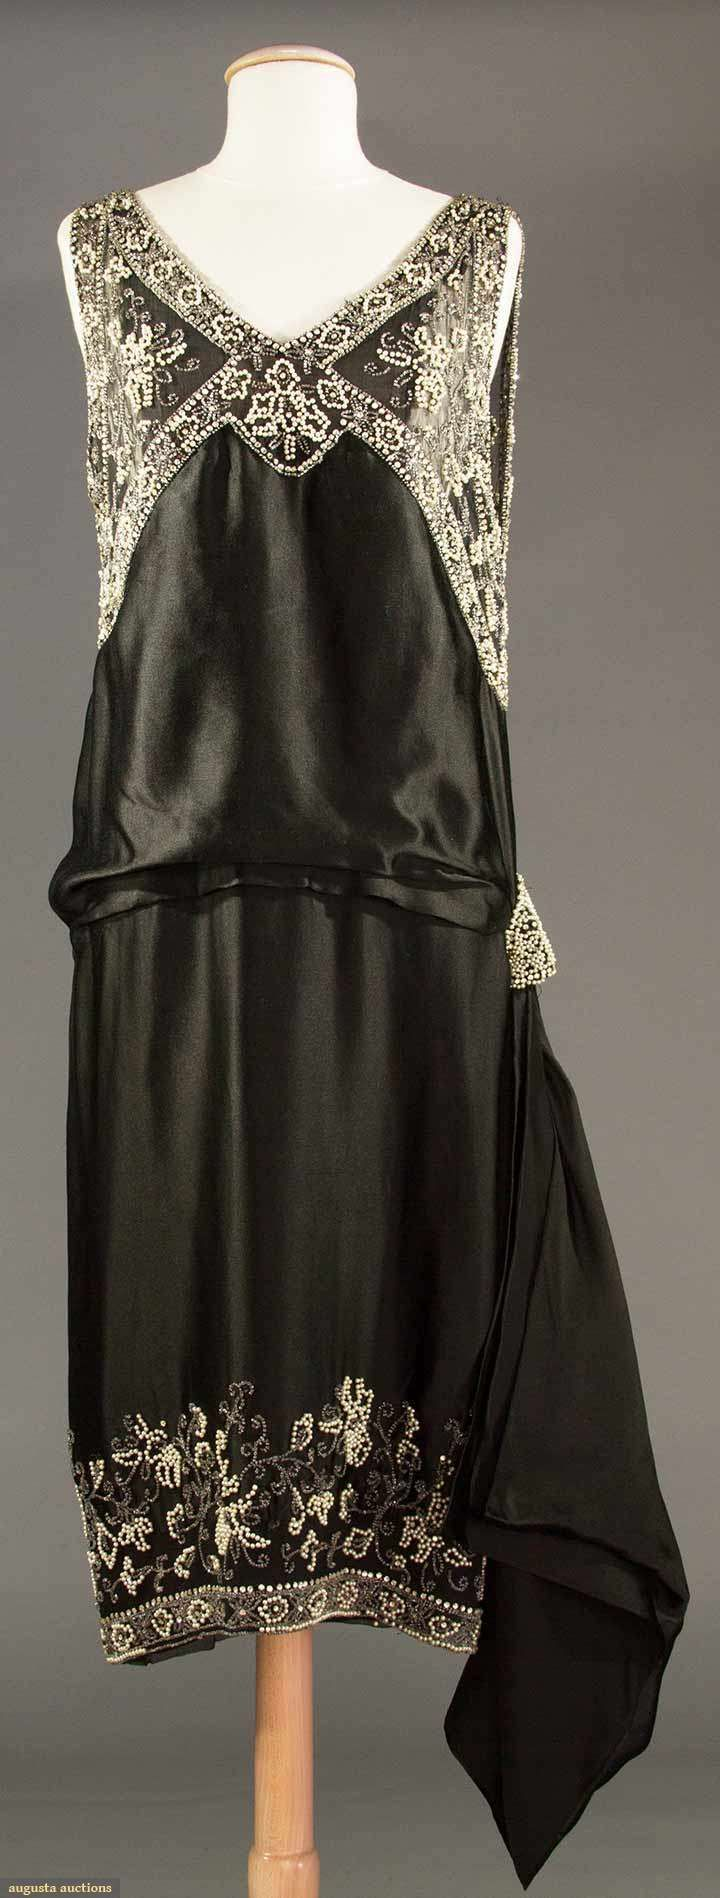 Cheap dress under 10 dollars in 1920